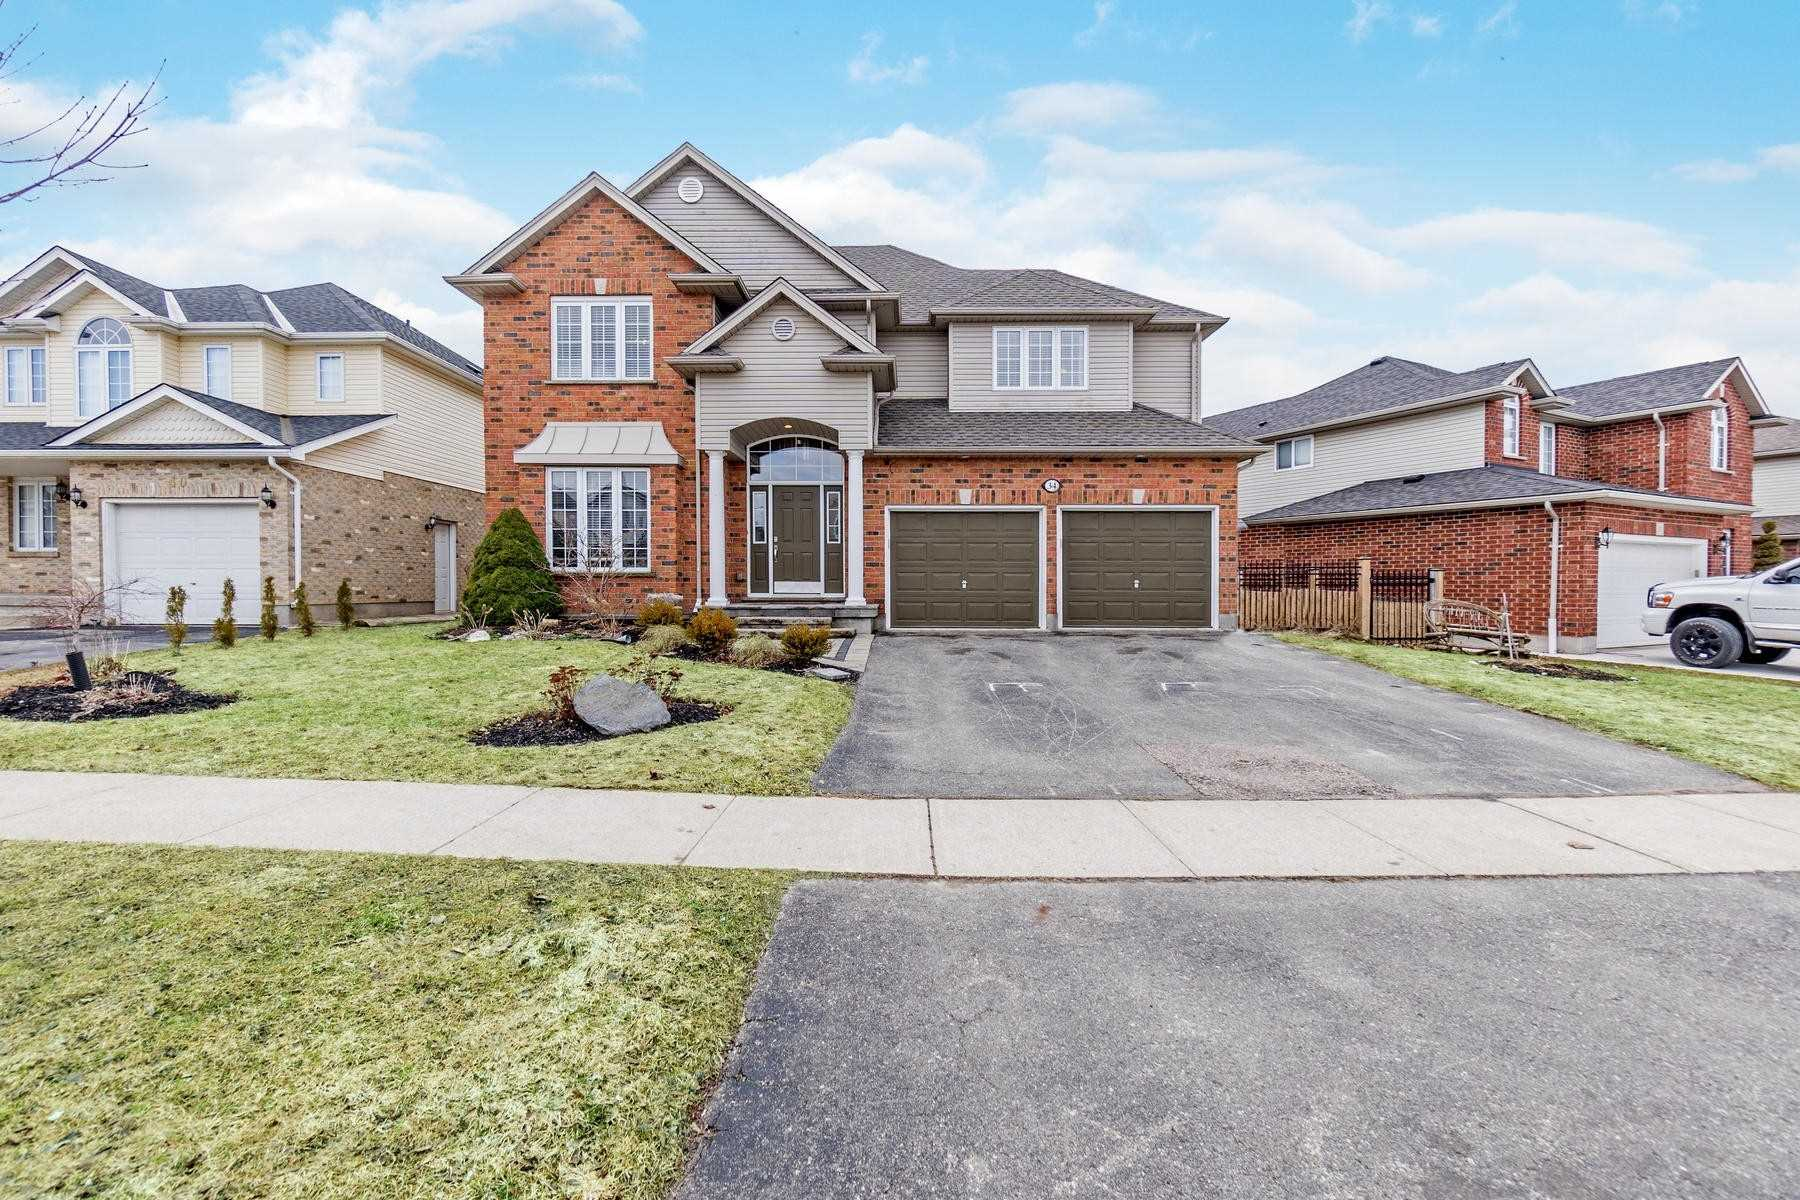 pictures of house for sale MLS: X4759802 located at 34 Stiefelmeyer Cres, Wilmot N3A2L1